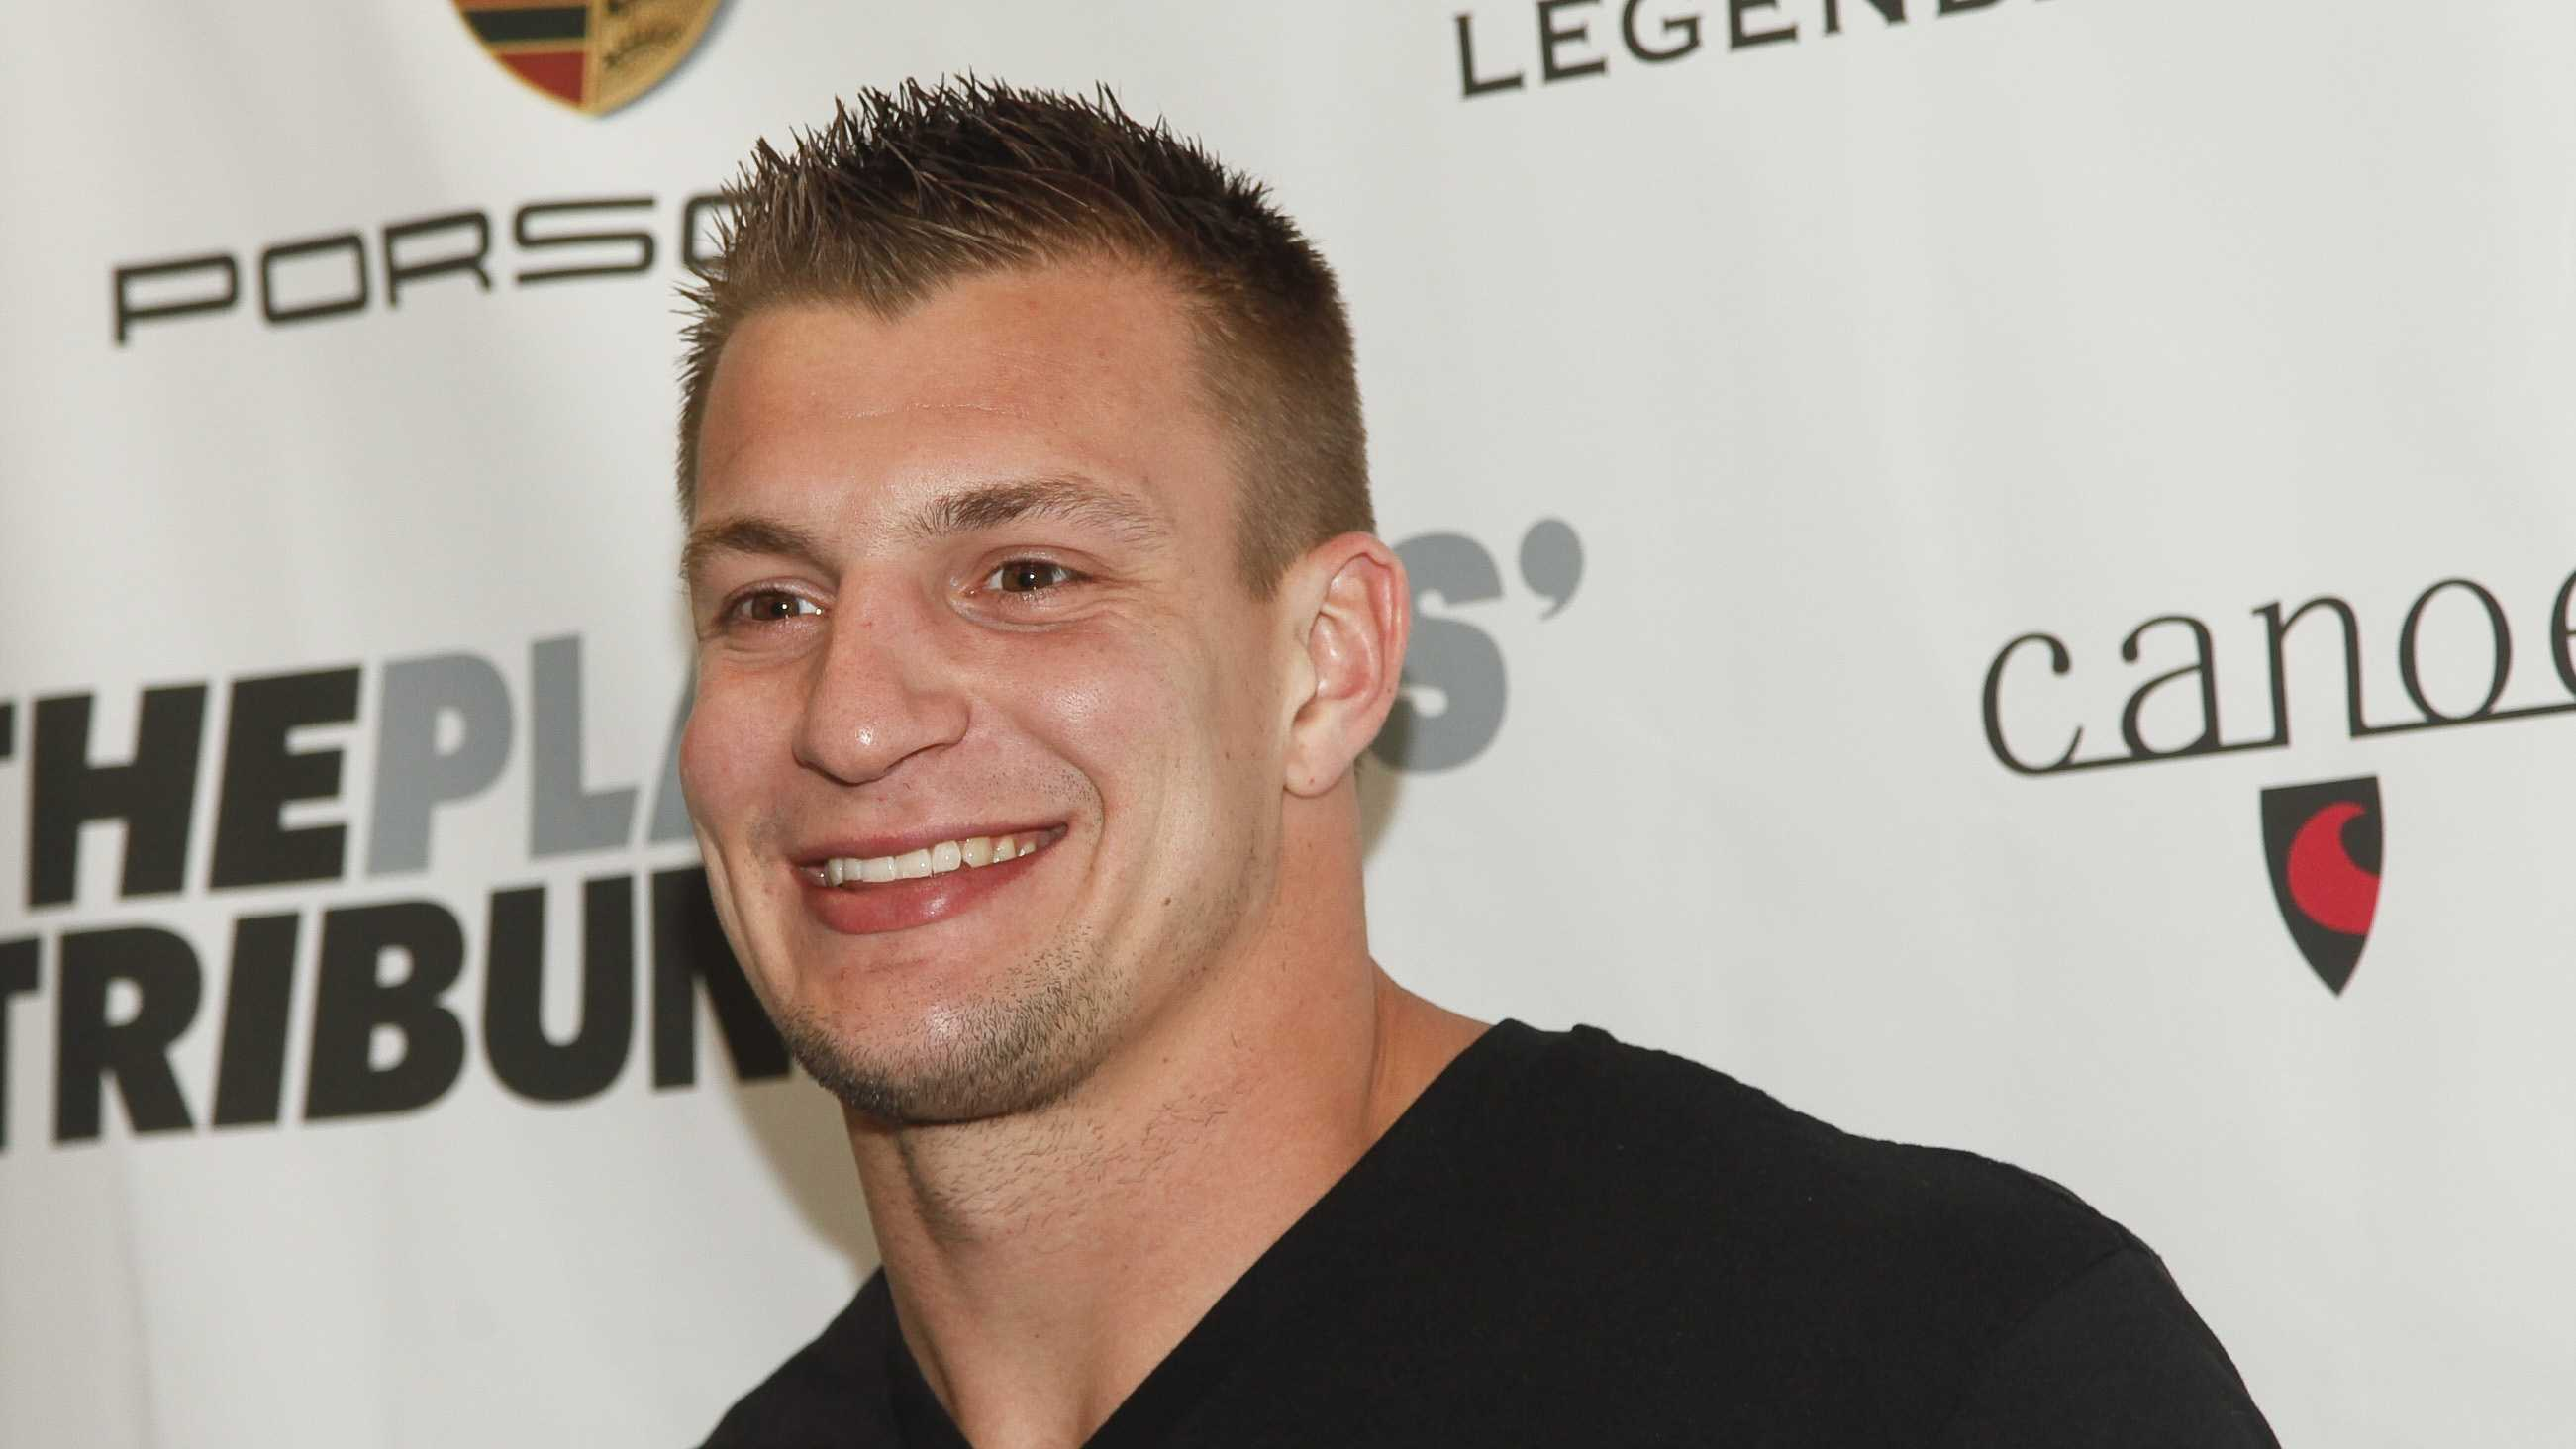 Rob Gronkowski attends The Player's Tribune official launch party at Canoe Studios on Saturday, Feb. 14, 2015, in New York.